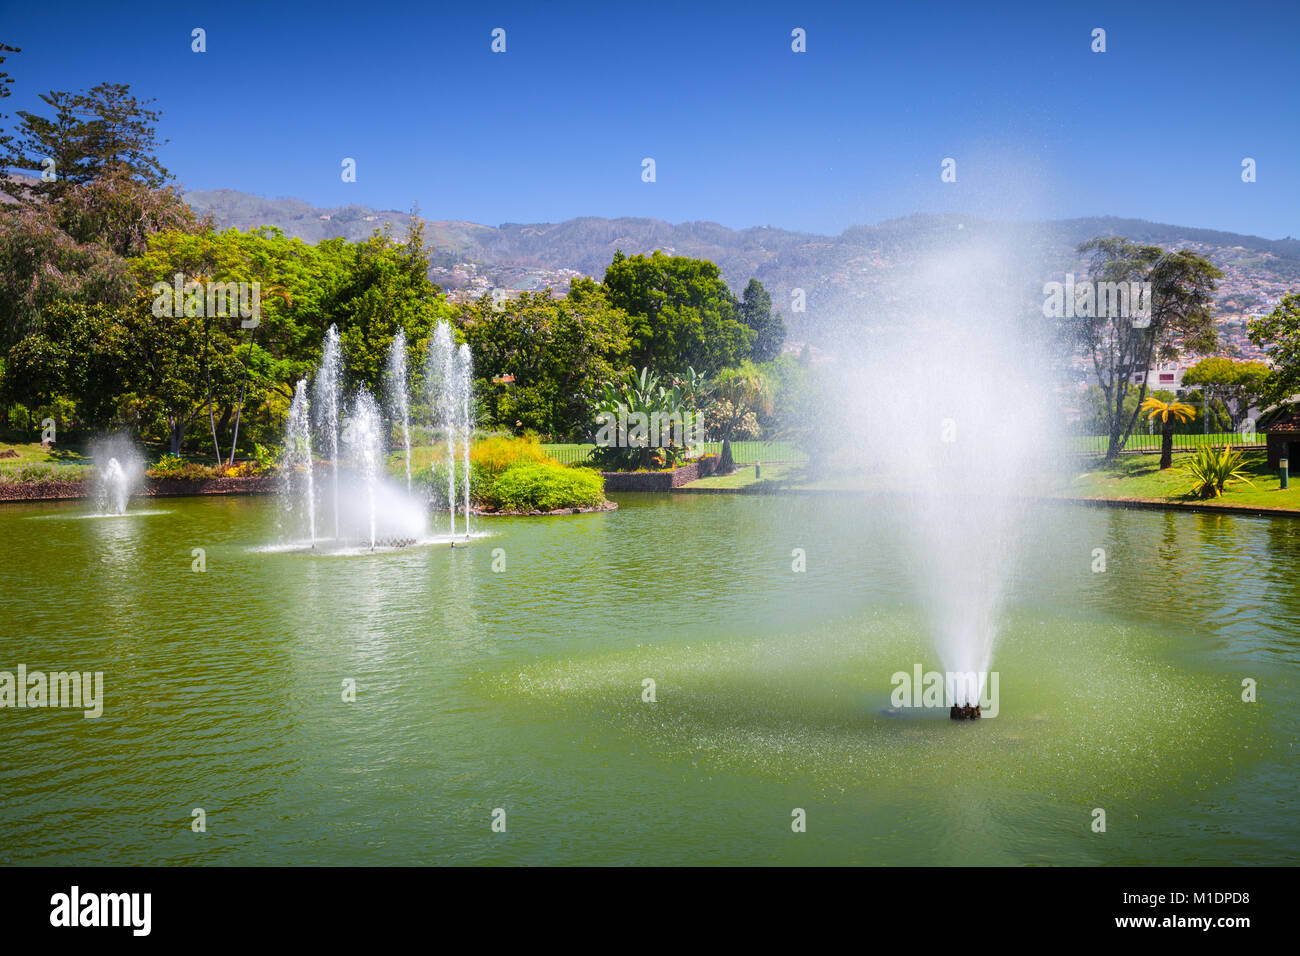 Fountains in pond of Santa Catarina Park, this is one of the largest parks of Funchal, Madeira island, Portugal - Stock Image